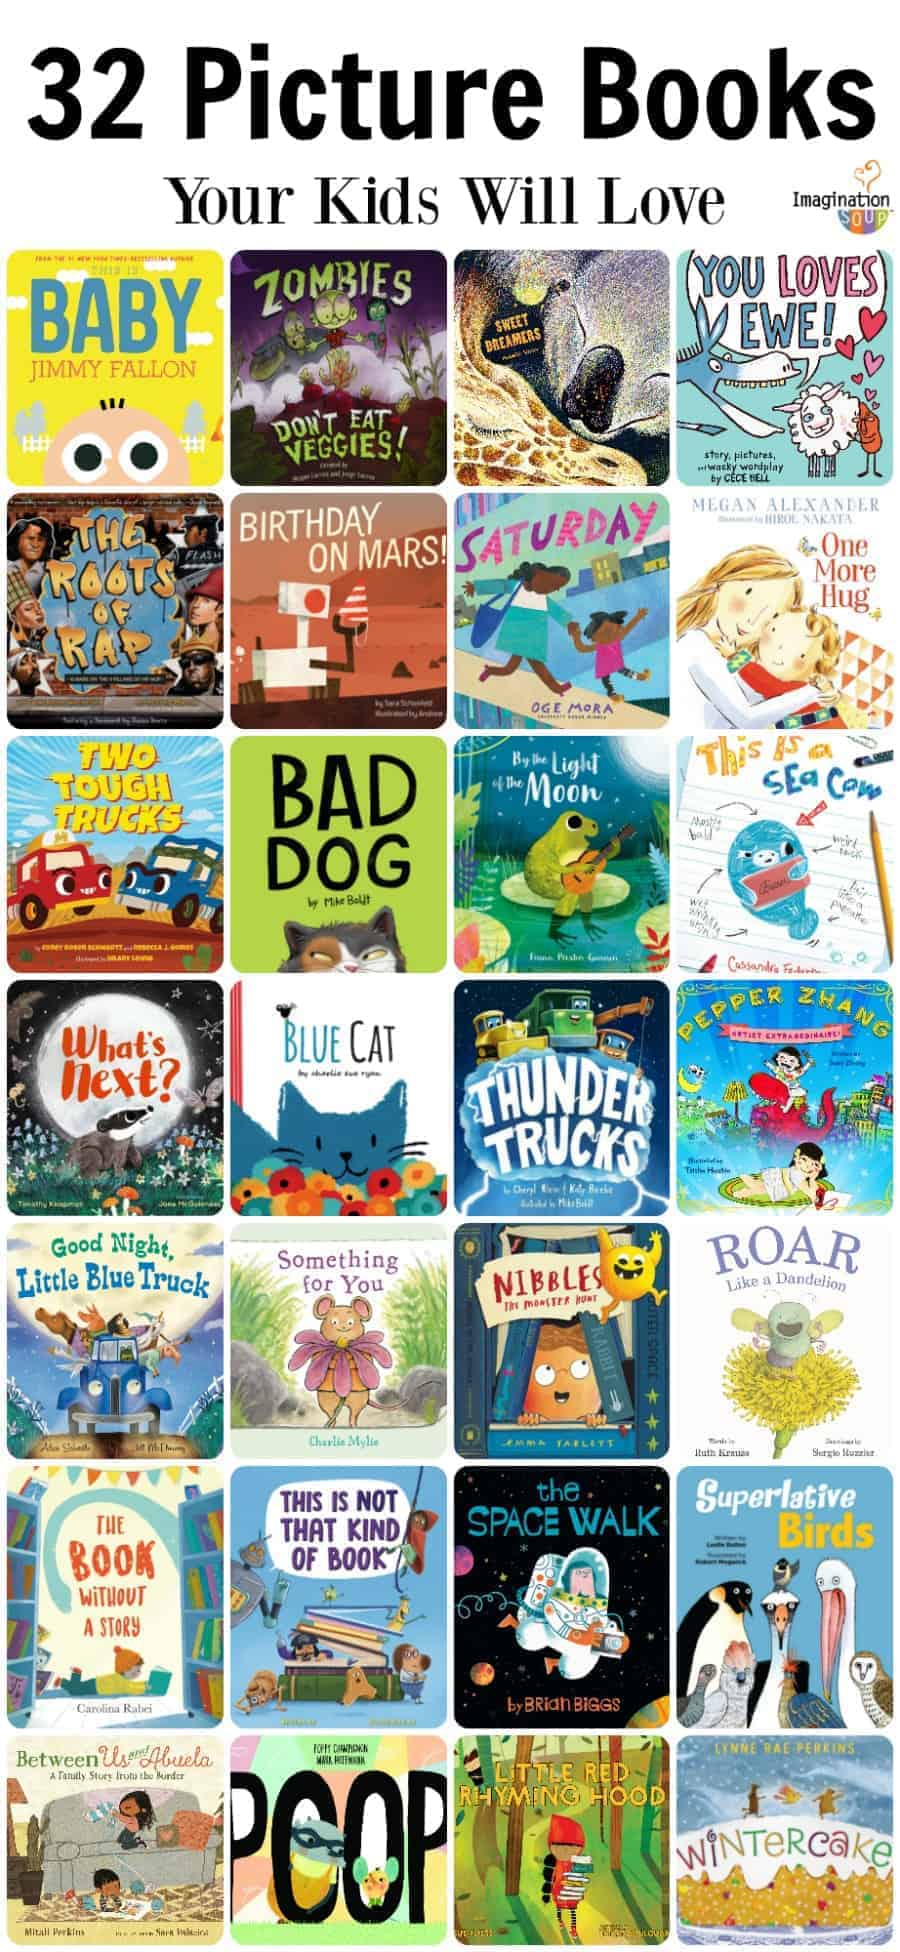 32 picture books your kids will love